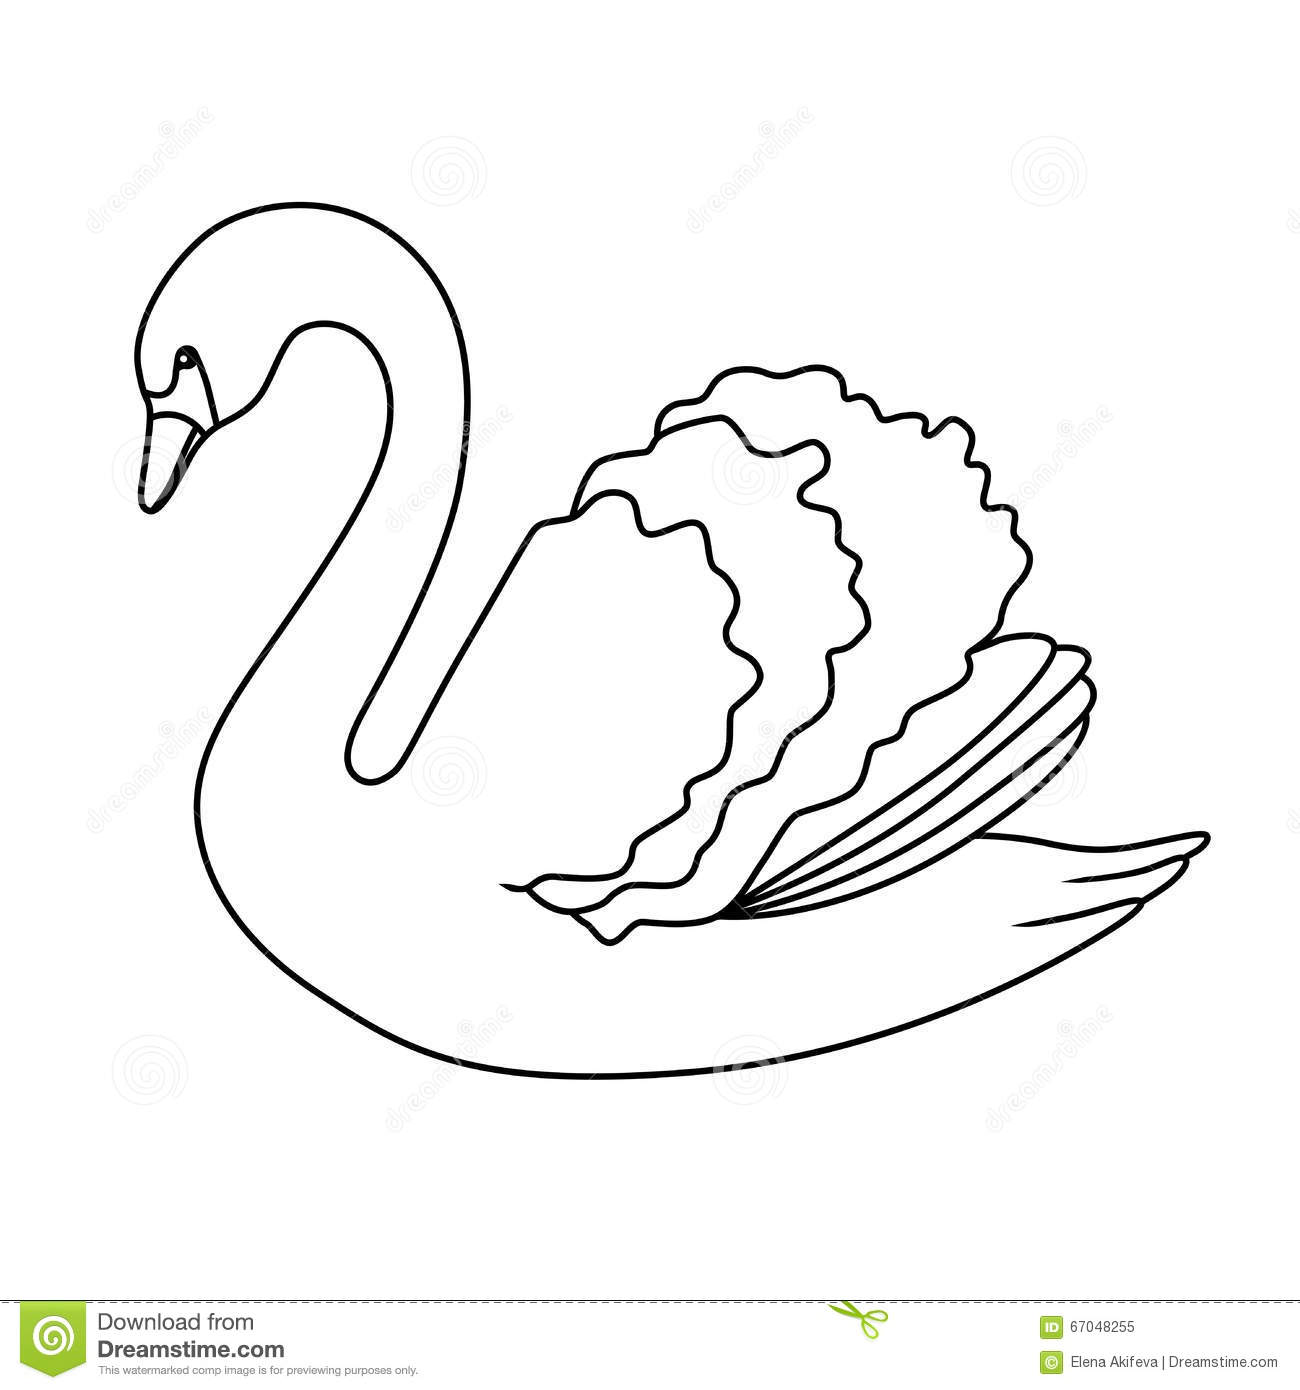 swan outline drawings free swan coloring pages coloring pages bird coloring outline drawings swan